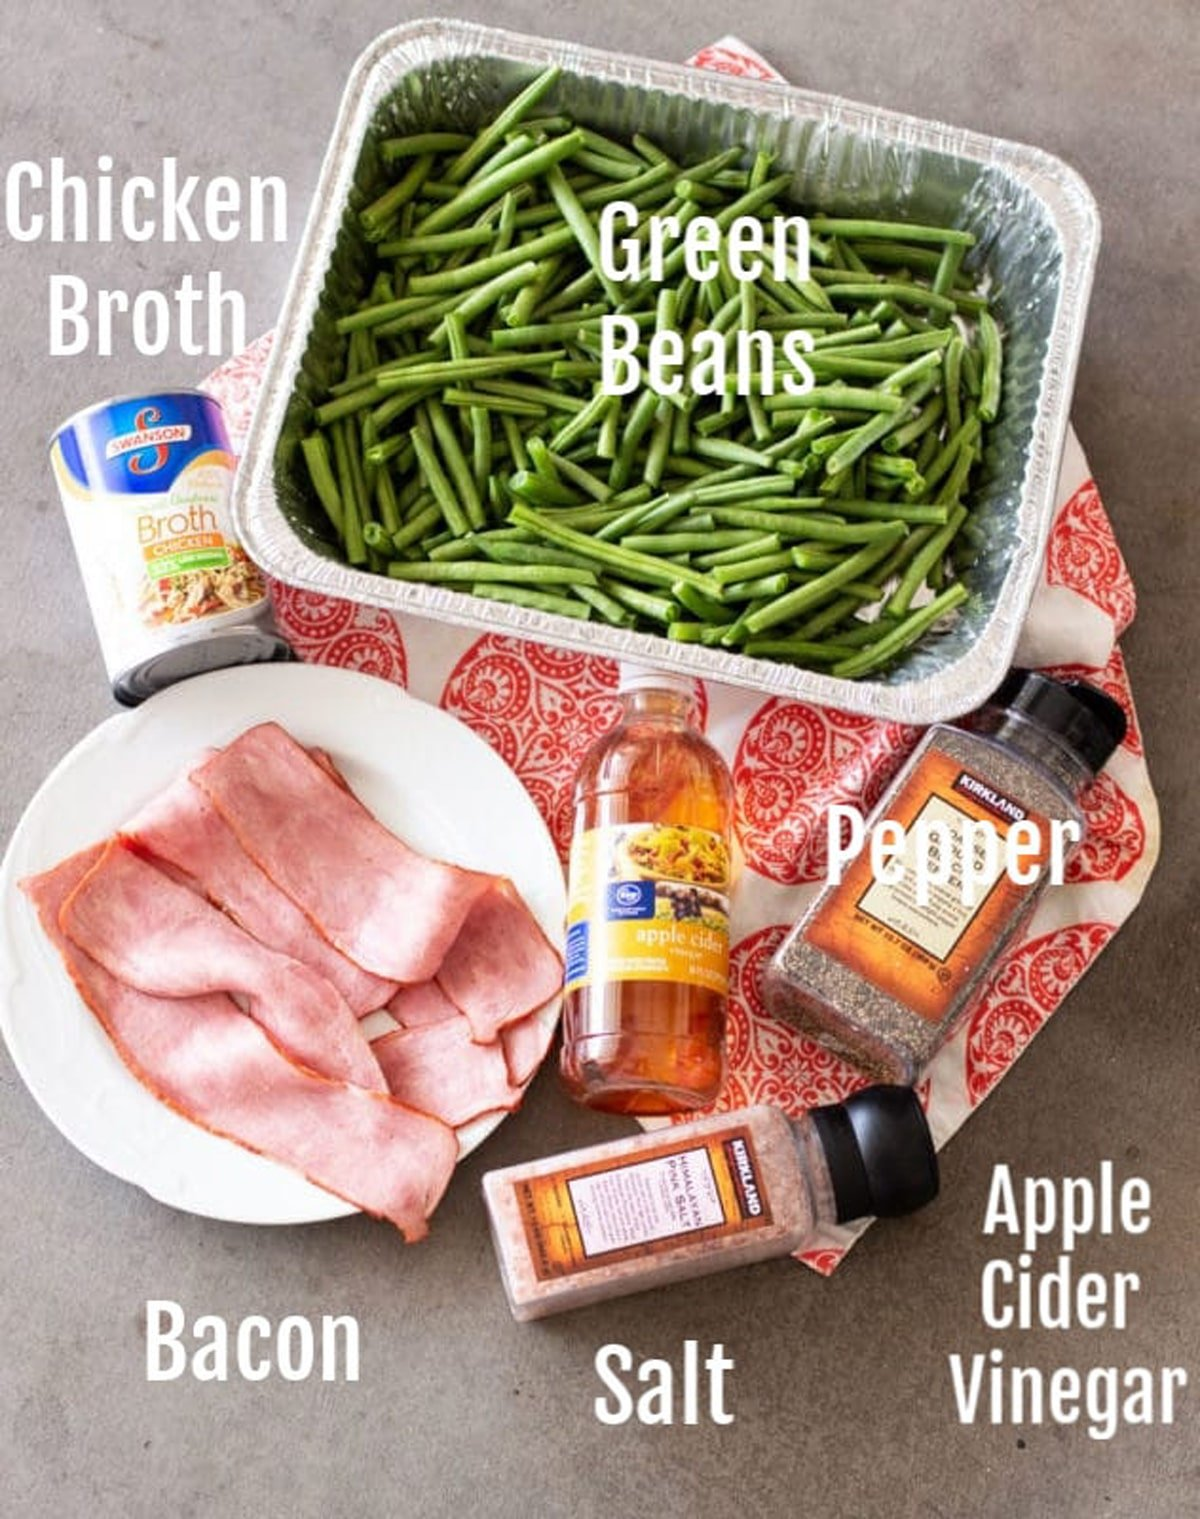 Pan of green beans, chicken broth, bacon, apple cider vinegar, salt and pepper on a table.